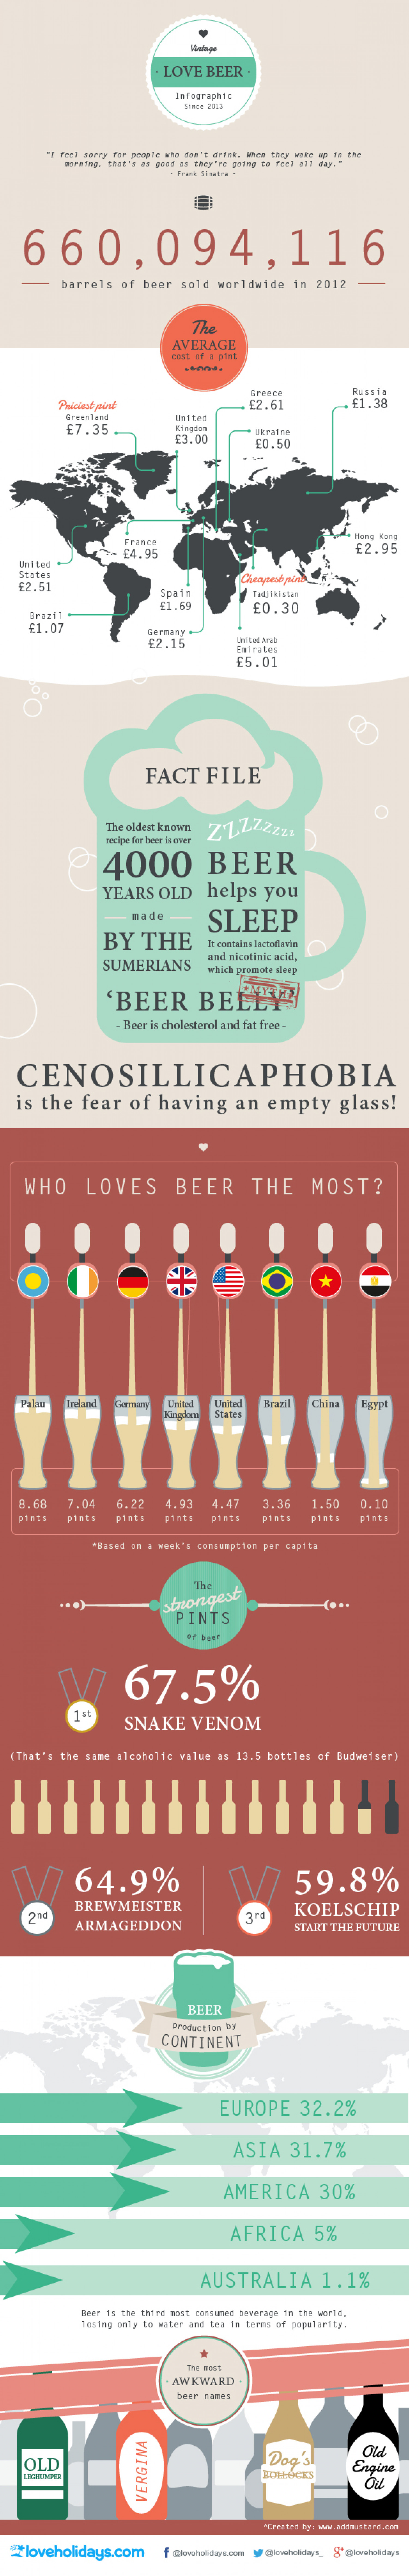 Who Loves Beer the Most Infographic